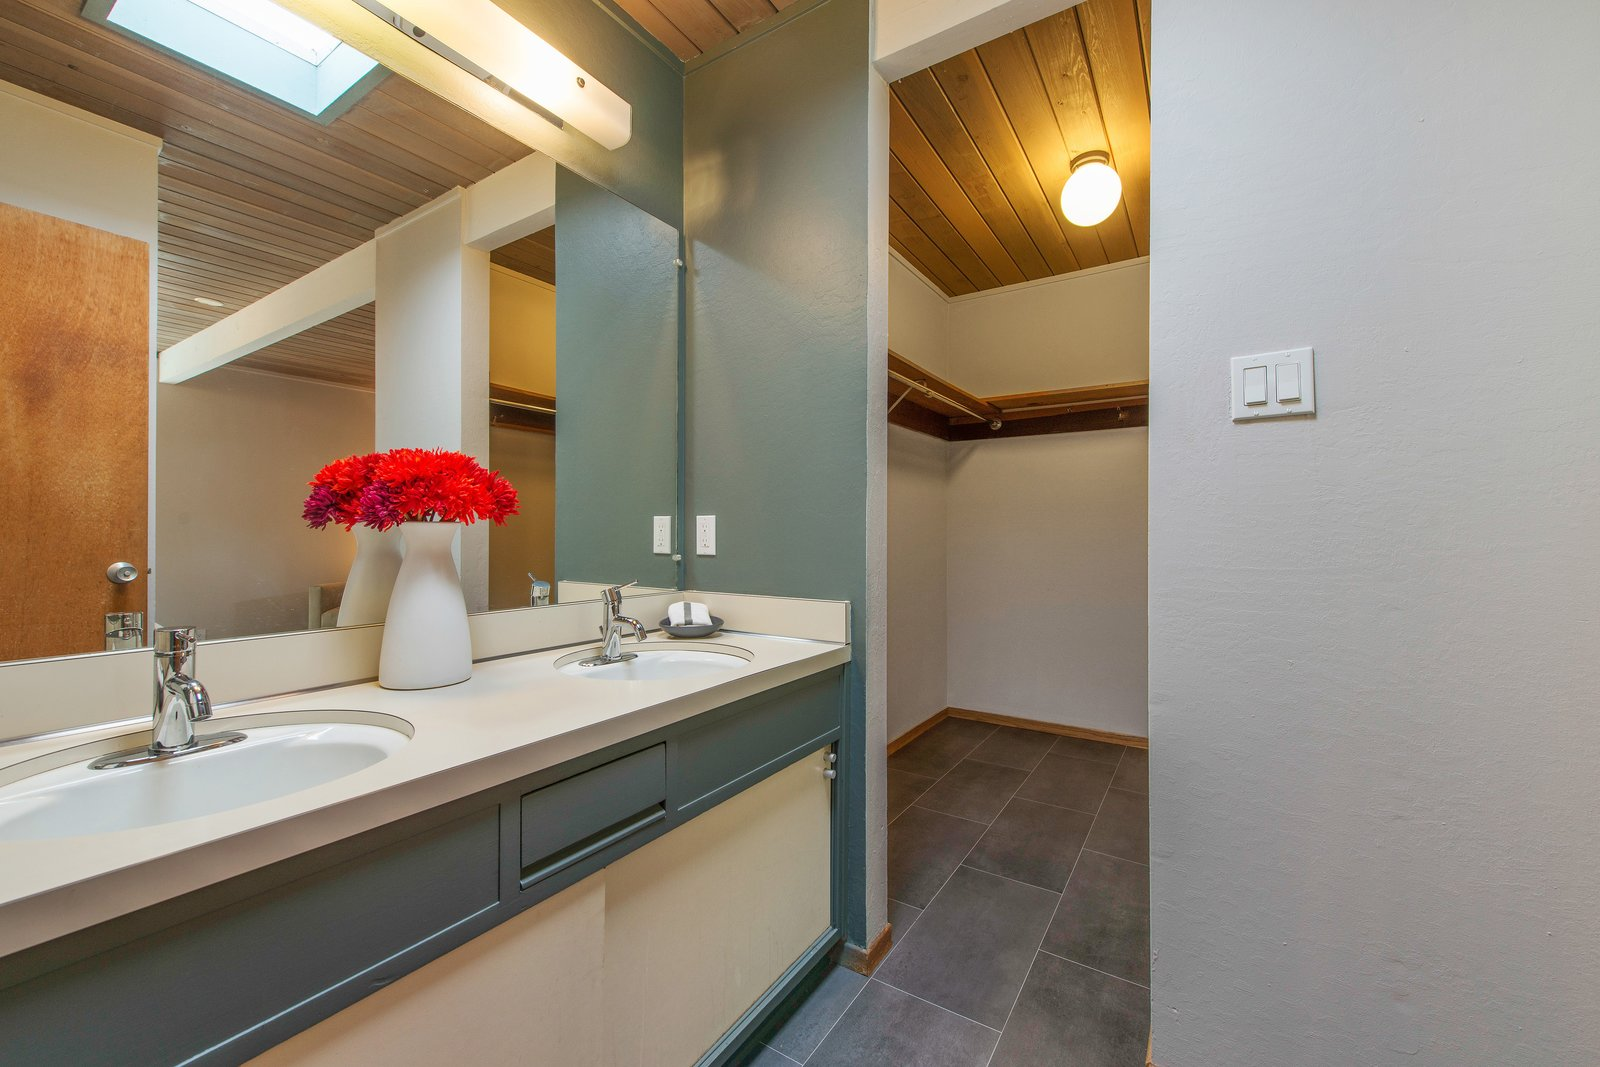 Bath Room, Wall Lighting, Drop In Sink, Laminate Floor, Laminate Counter, and Ceiling Lighting  The master bedroom also has an en-suite bathroom and features a large walk-in closet.     Photo 9 of 14 in Live Large in This Extra-Spacious Eichler That's Asking $1.38M